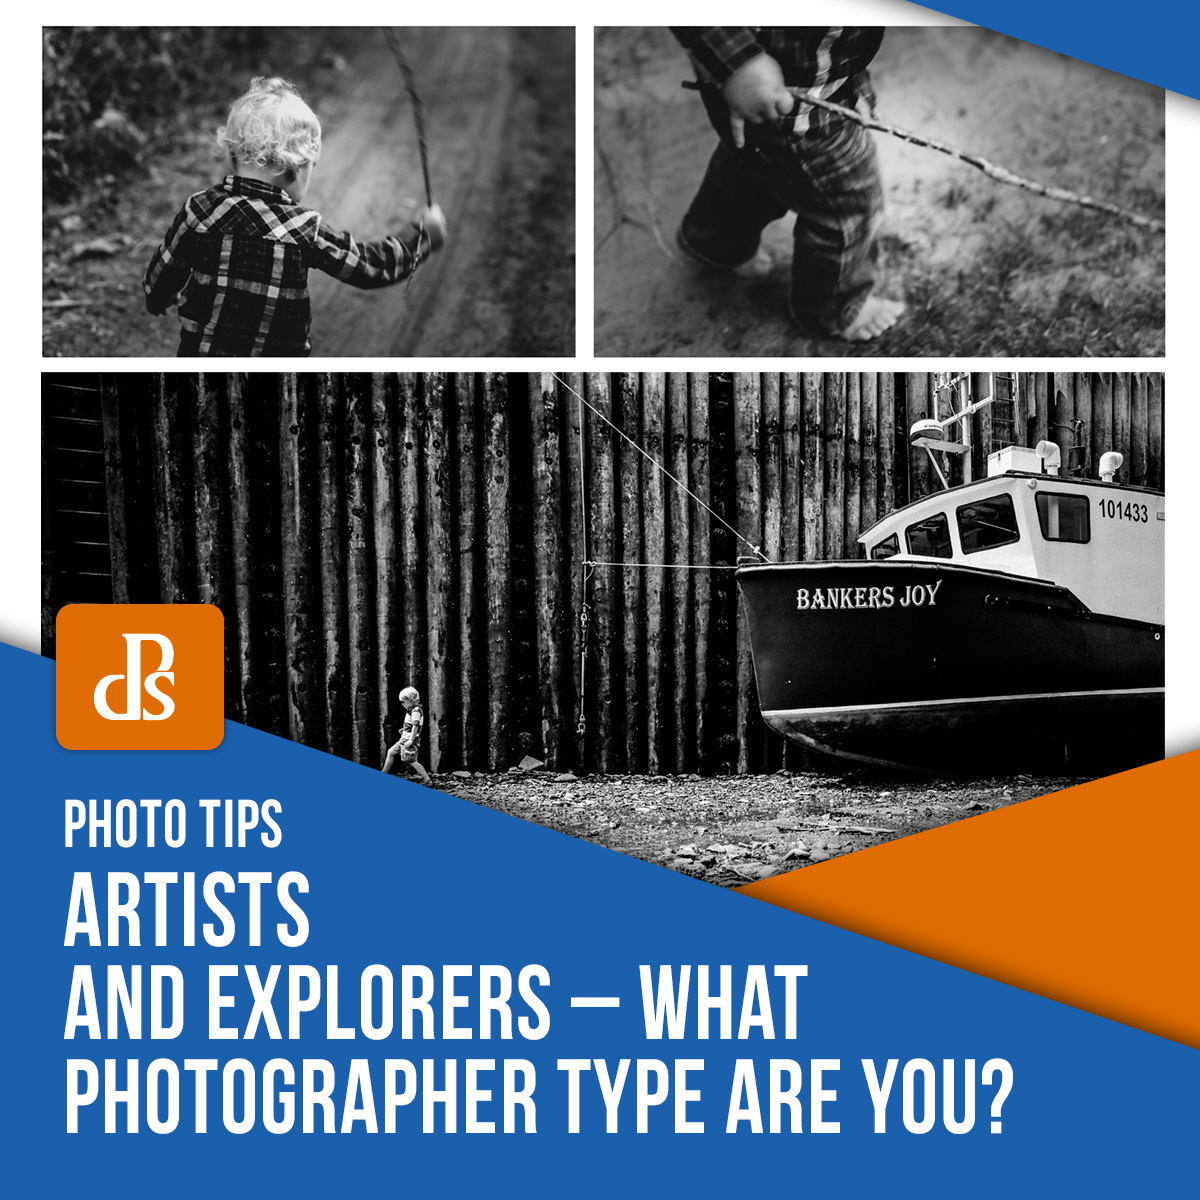 https://i0.wp.com/digital-photography-school.com/wp-content/uploads/2020/03/dps-what-photographer-type-are-you.jpg?ssl=1